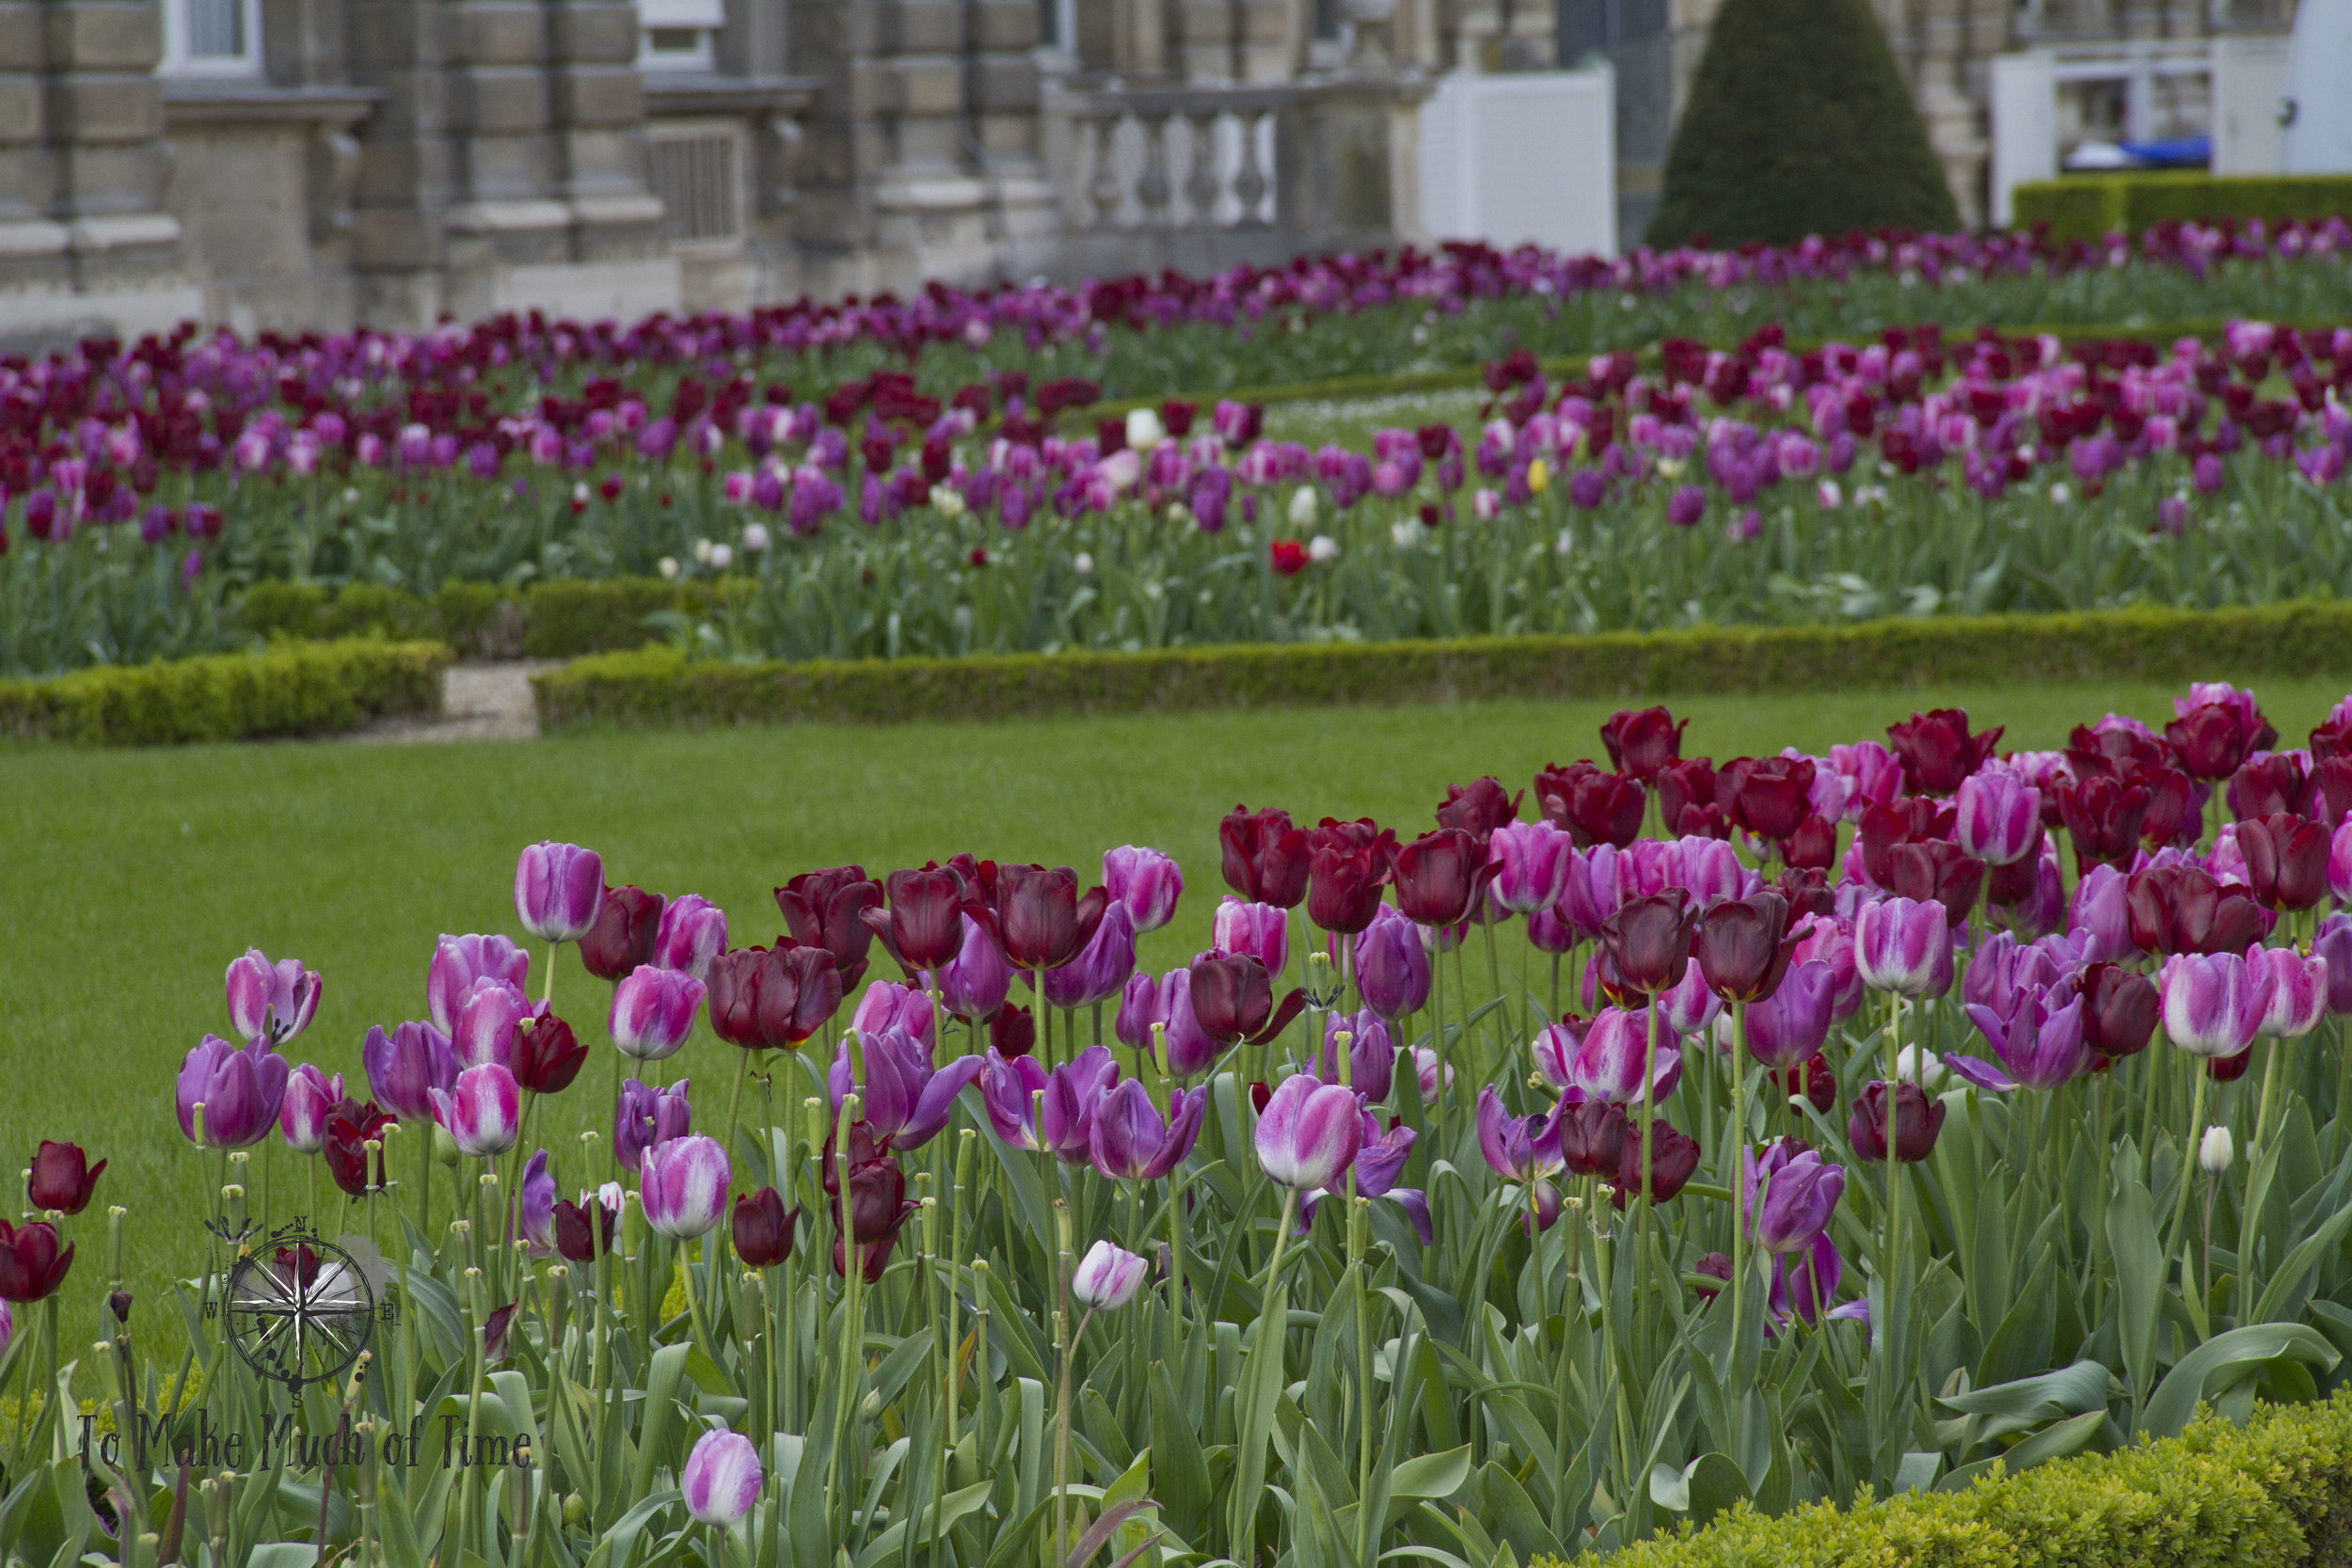 Tulips at Jardin du Luxembourg | Gardens | To Make Much of Time